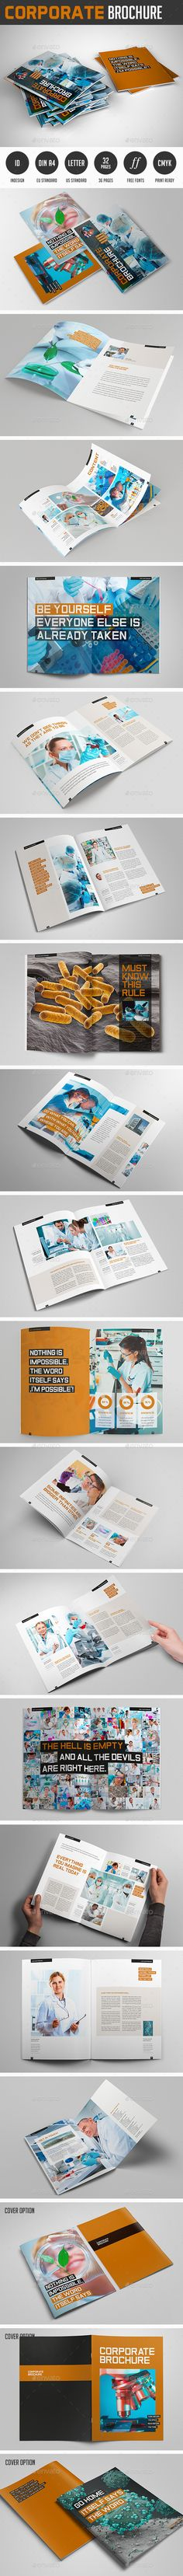 Creative Brochure Vol 23 - A4 Landscape Brochure template - company brochure templates